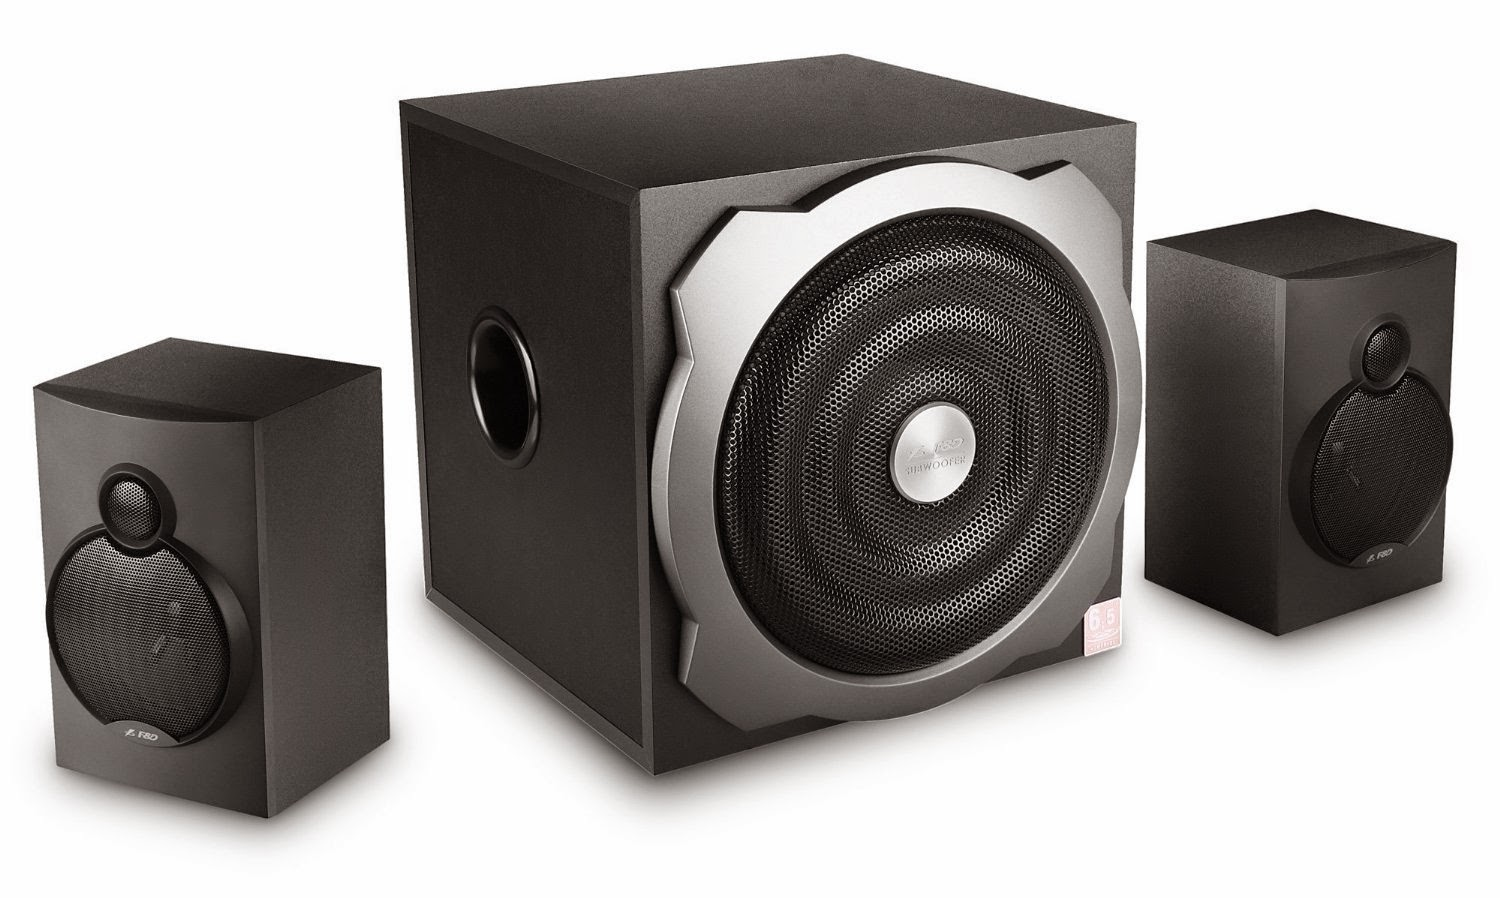 F&D A521 2.1 Channel Speaker for Rs 2399